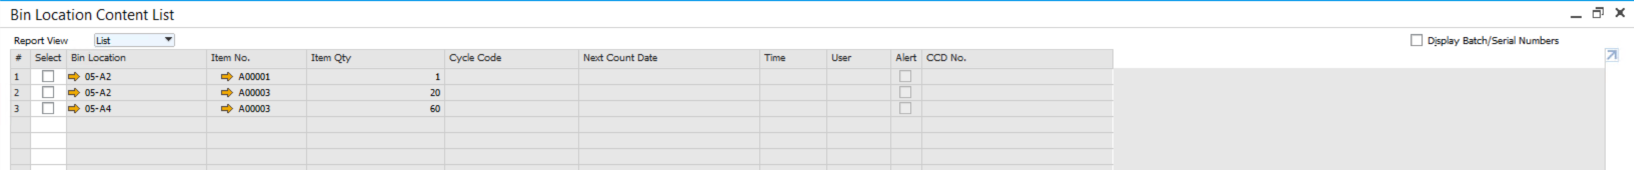 Hierarchical-Bin-Location-Content-List-in-SAP-Business-One-1